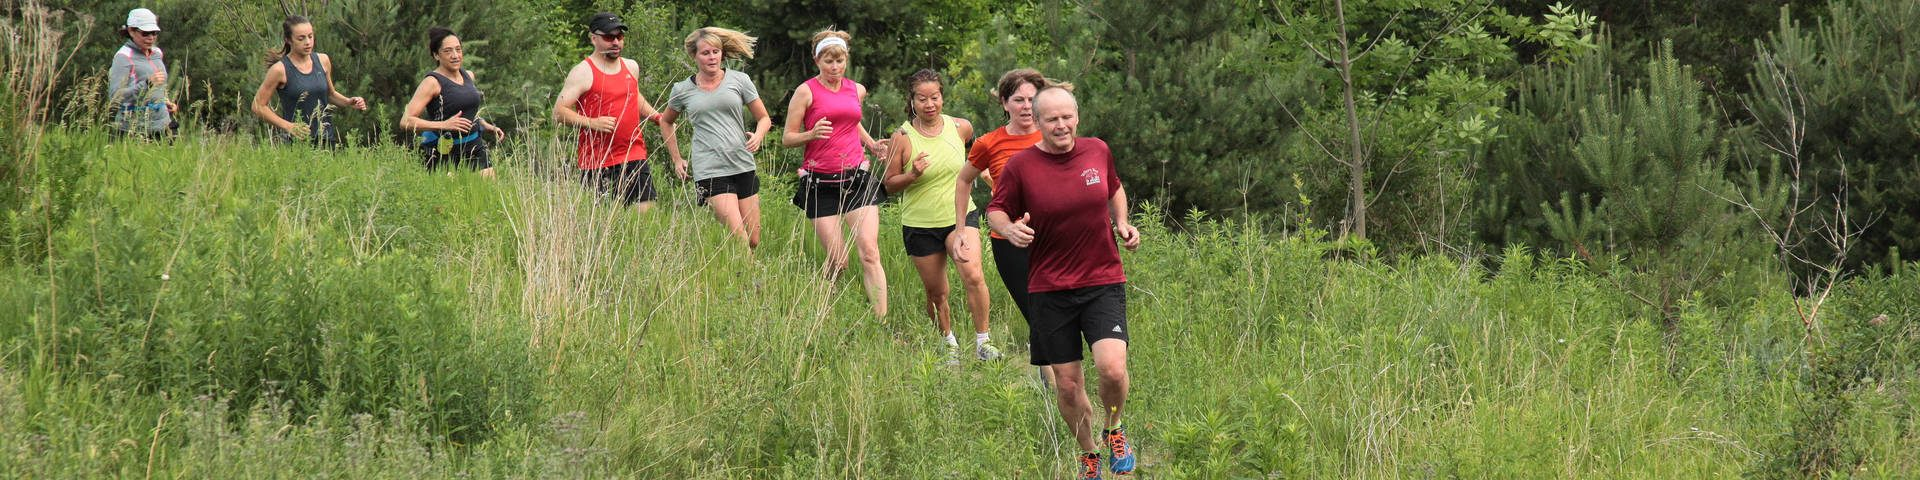 Saturday Trail Runs Meadowlily 2016